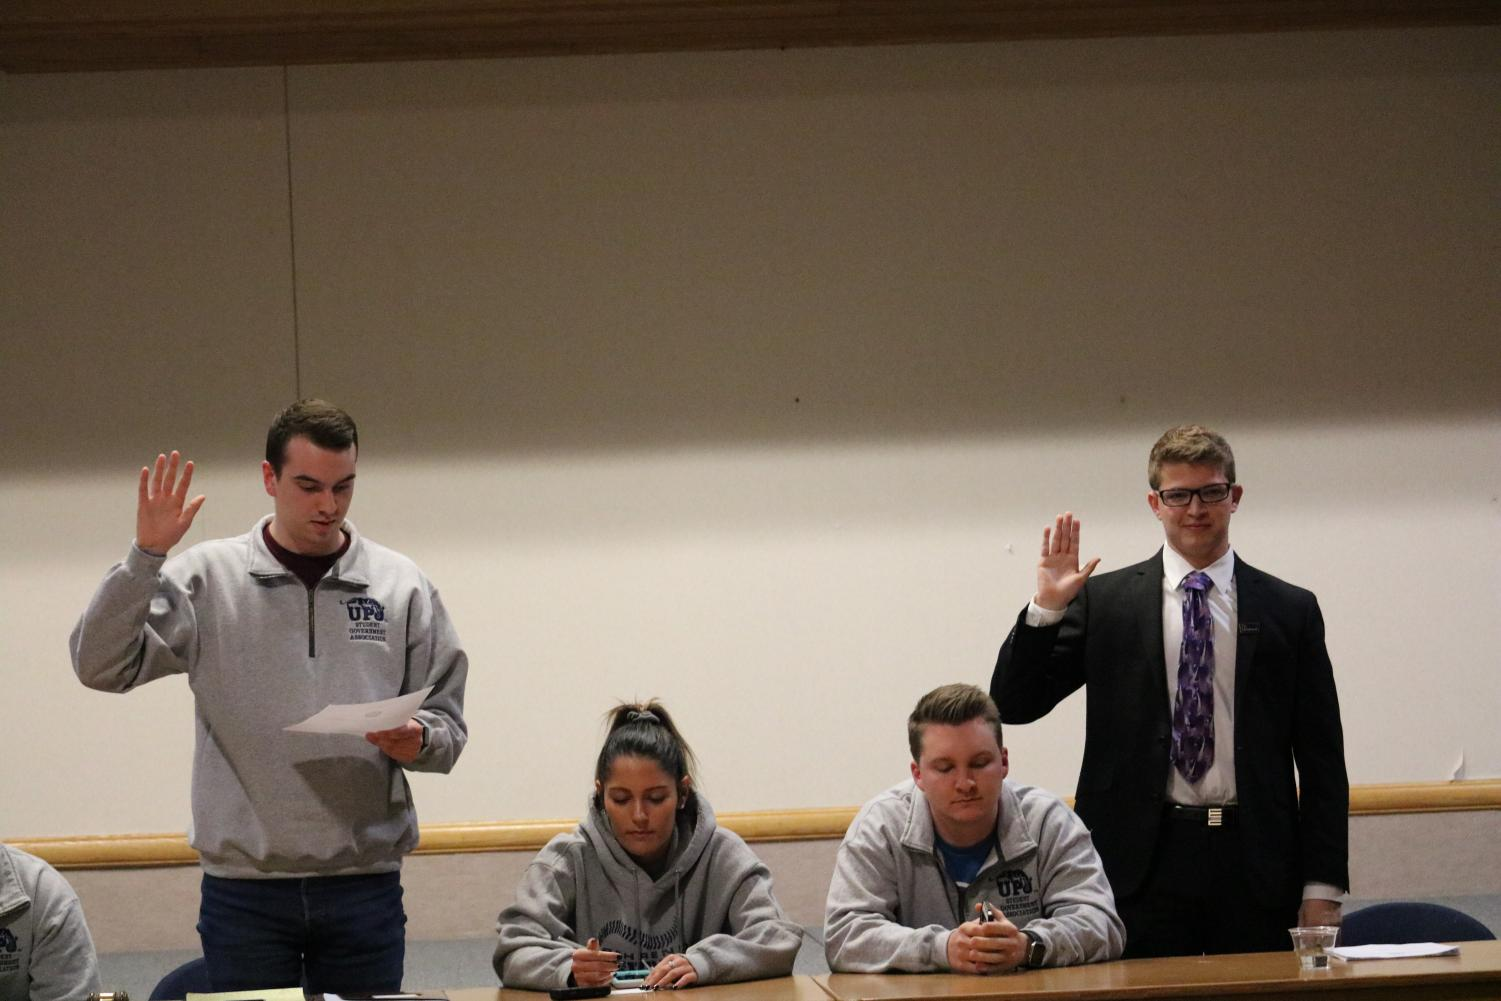 Former student government President Joe Evanko (left) swears in his successor Sam Miller (right) as president.